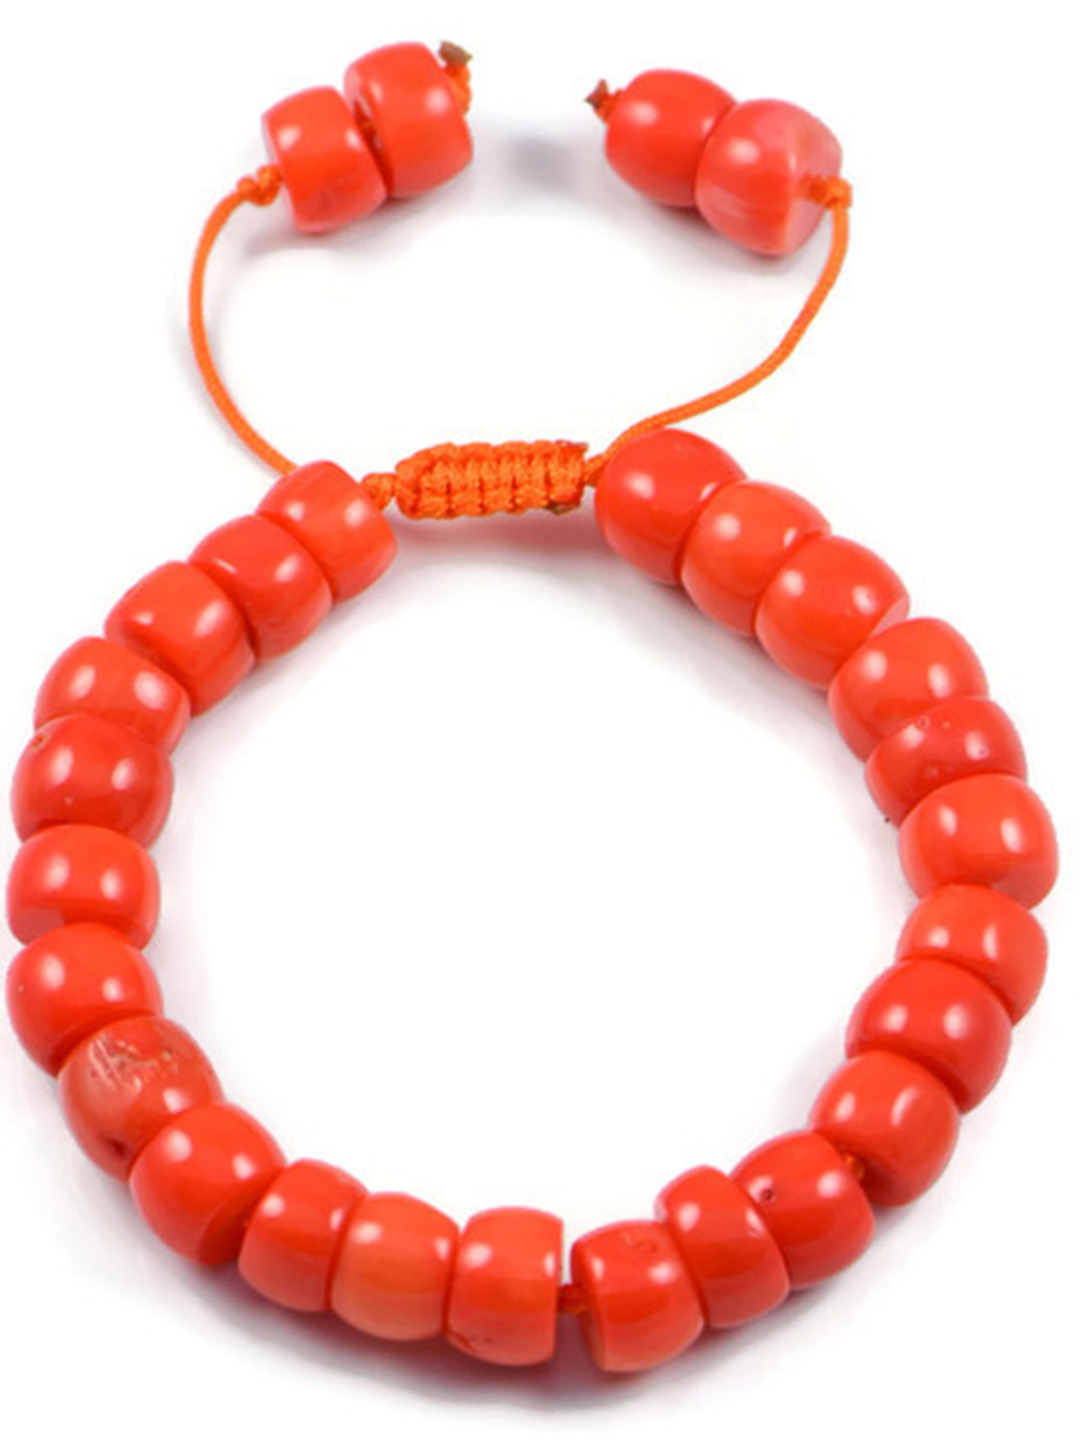 AqBeadsUk Classic Semi-Precious 6x9mm Rondelle Gemstone Orange Coral Beads 7.5 inch Closed 10 inch Open Luxury Hand-knotted Women's Bracelet